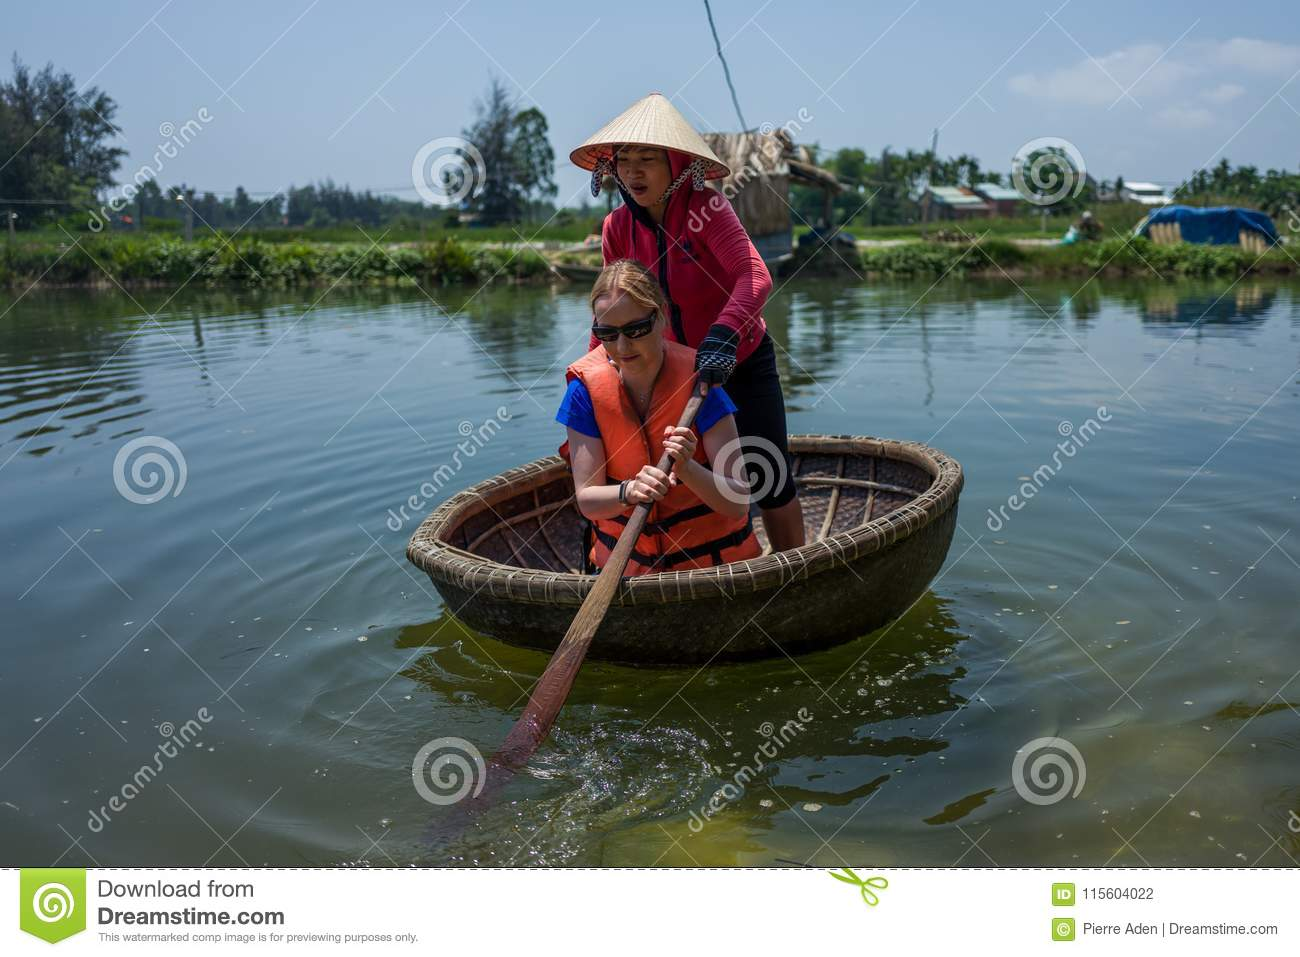 Hoi An, Vietnam - April 21, 2018: Caucasian woman learns to use Thung Chai round boat with guide in Hoi An.